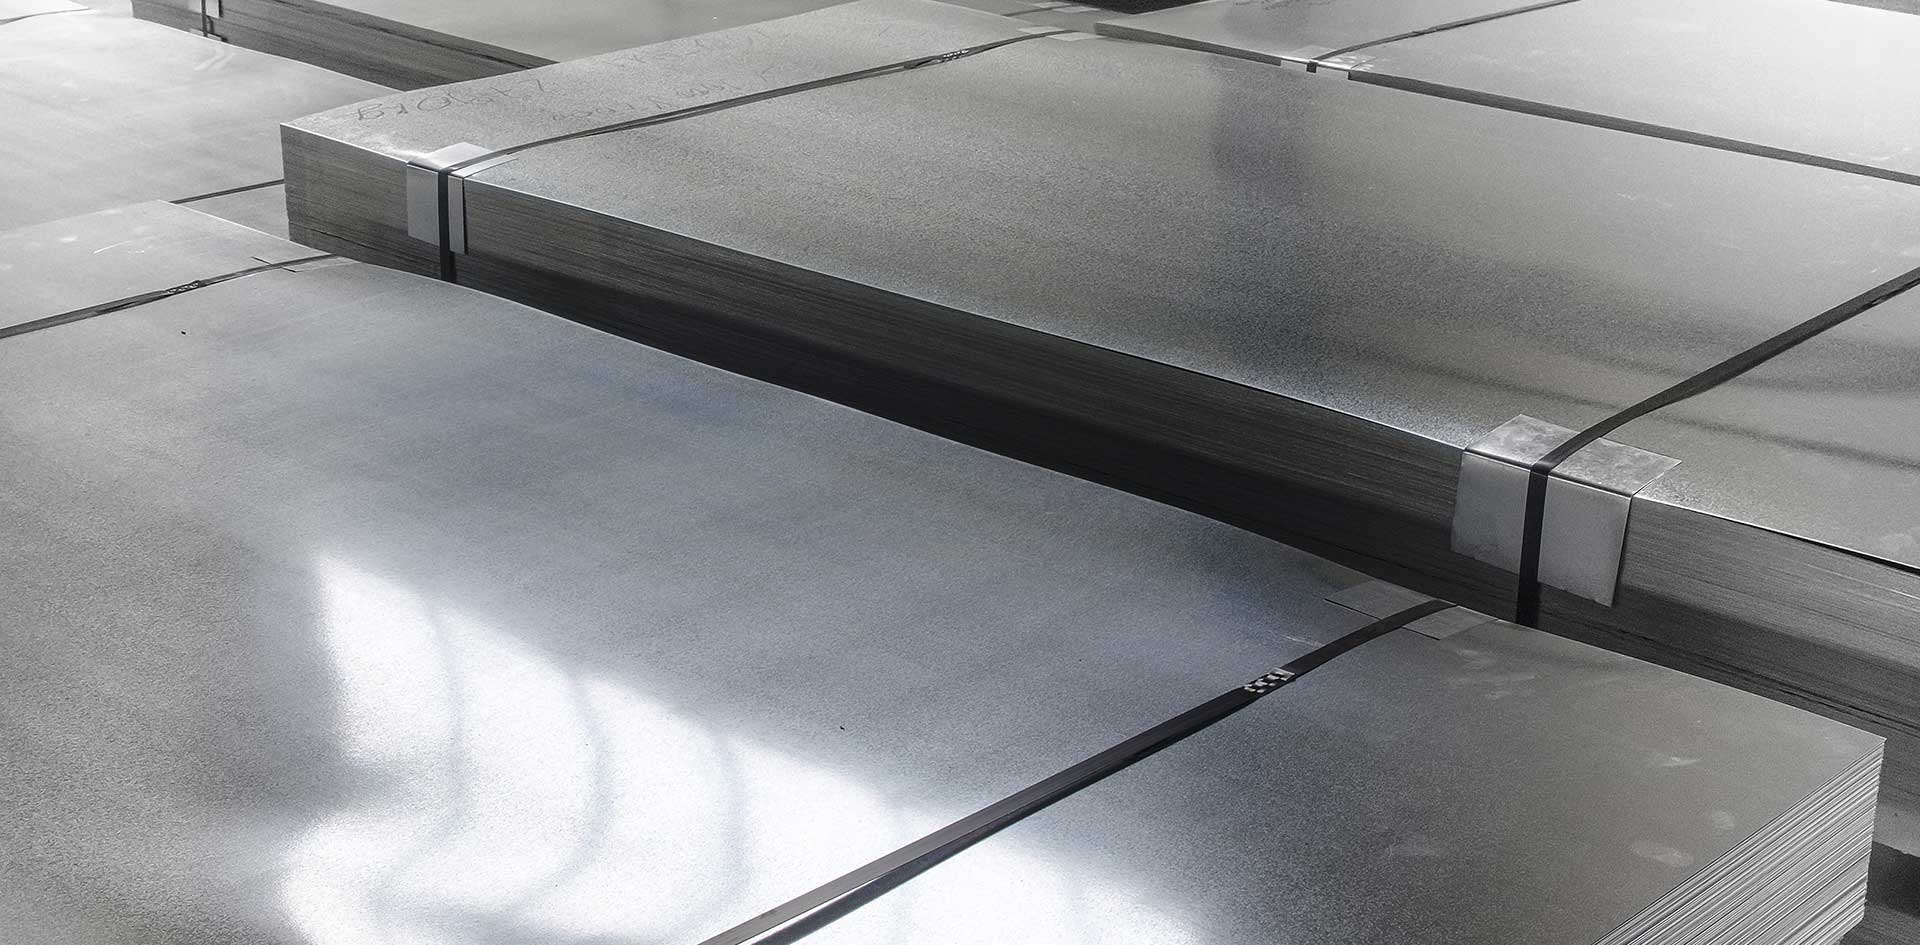 We are one of the most professional suppliers for steel materials